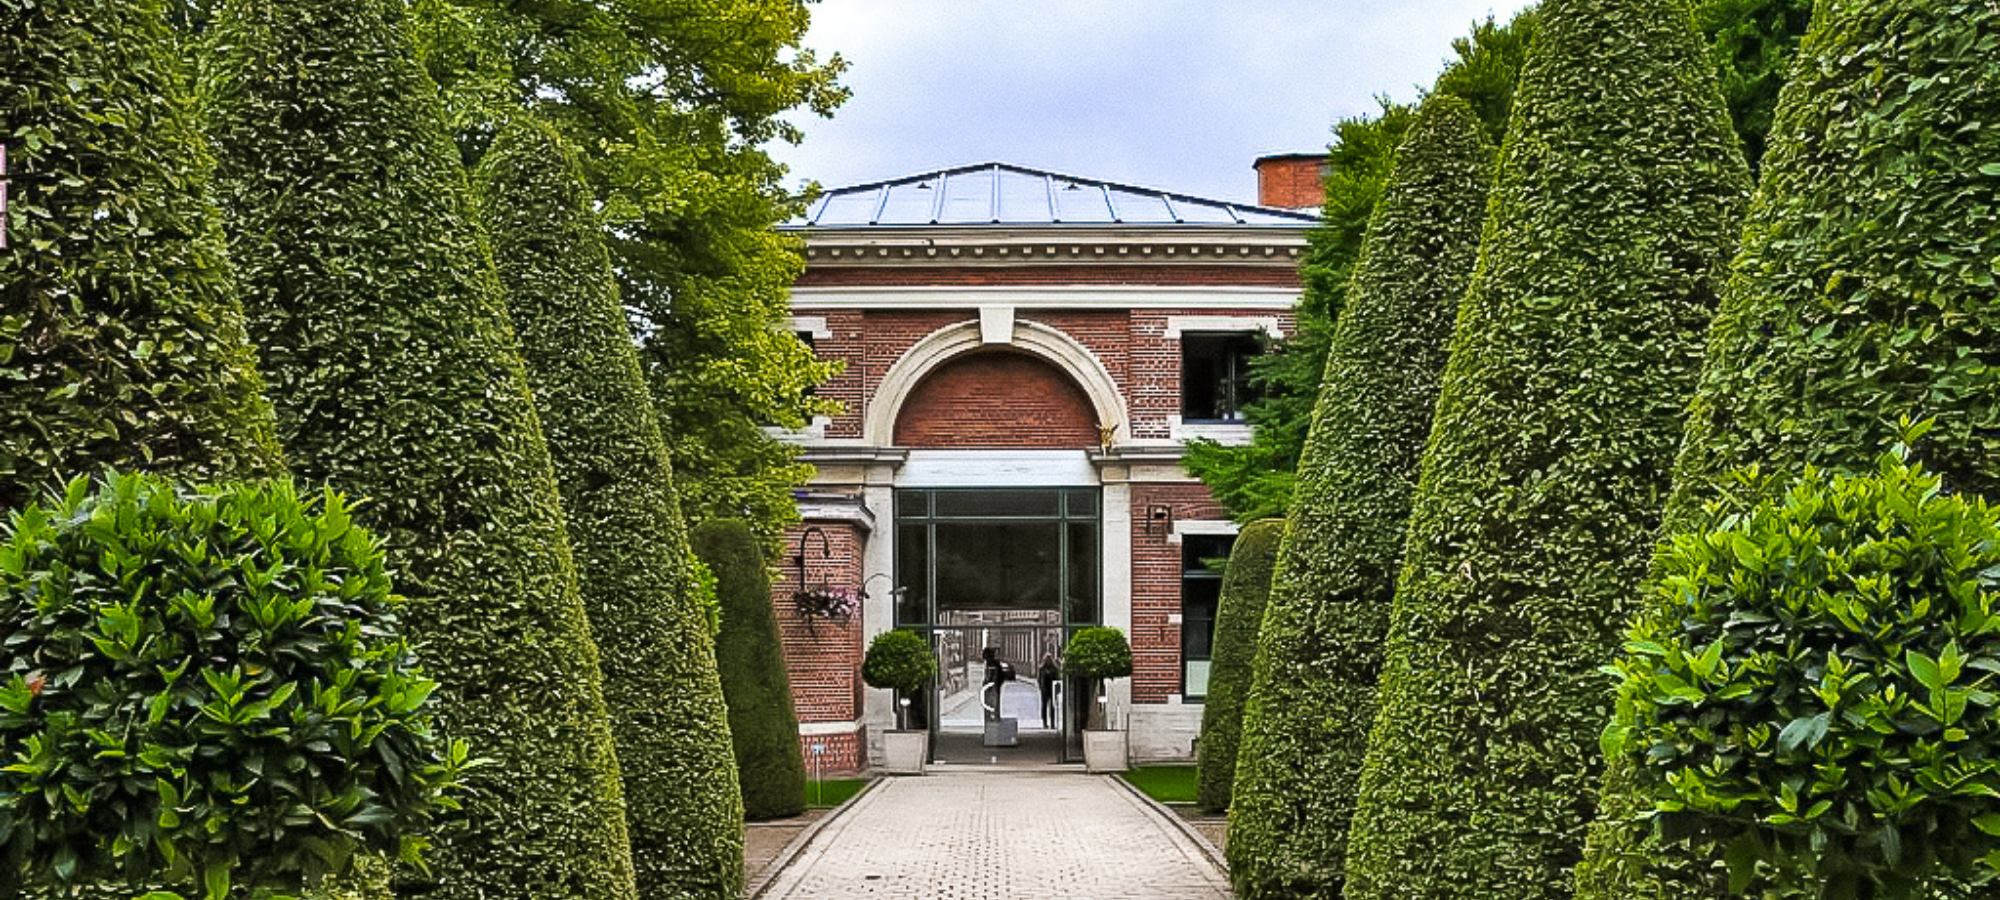 A row of large, trimmed trees lining the path to the entrance of the building at Kruidtuin in Leuven, Belgium